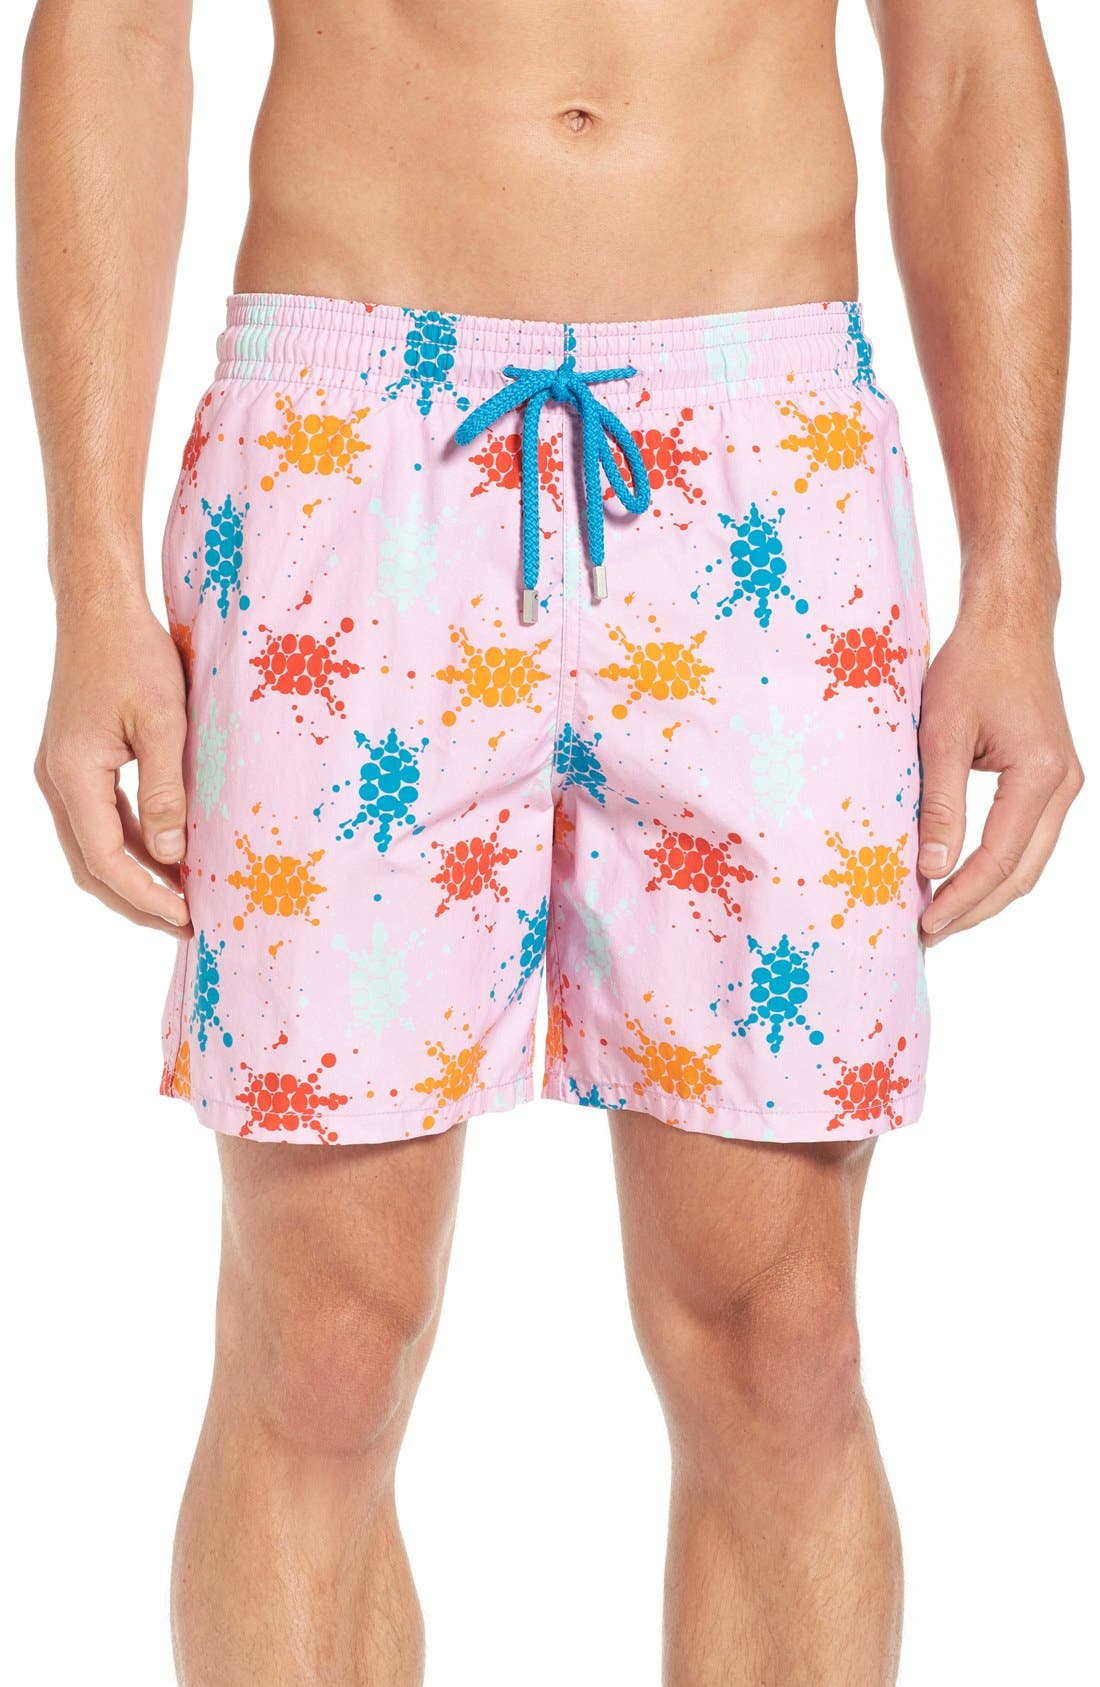 Japan Turtles Print Swim Trunks,                             Main thumbnail 1, color,                             659